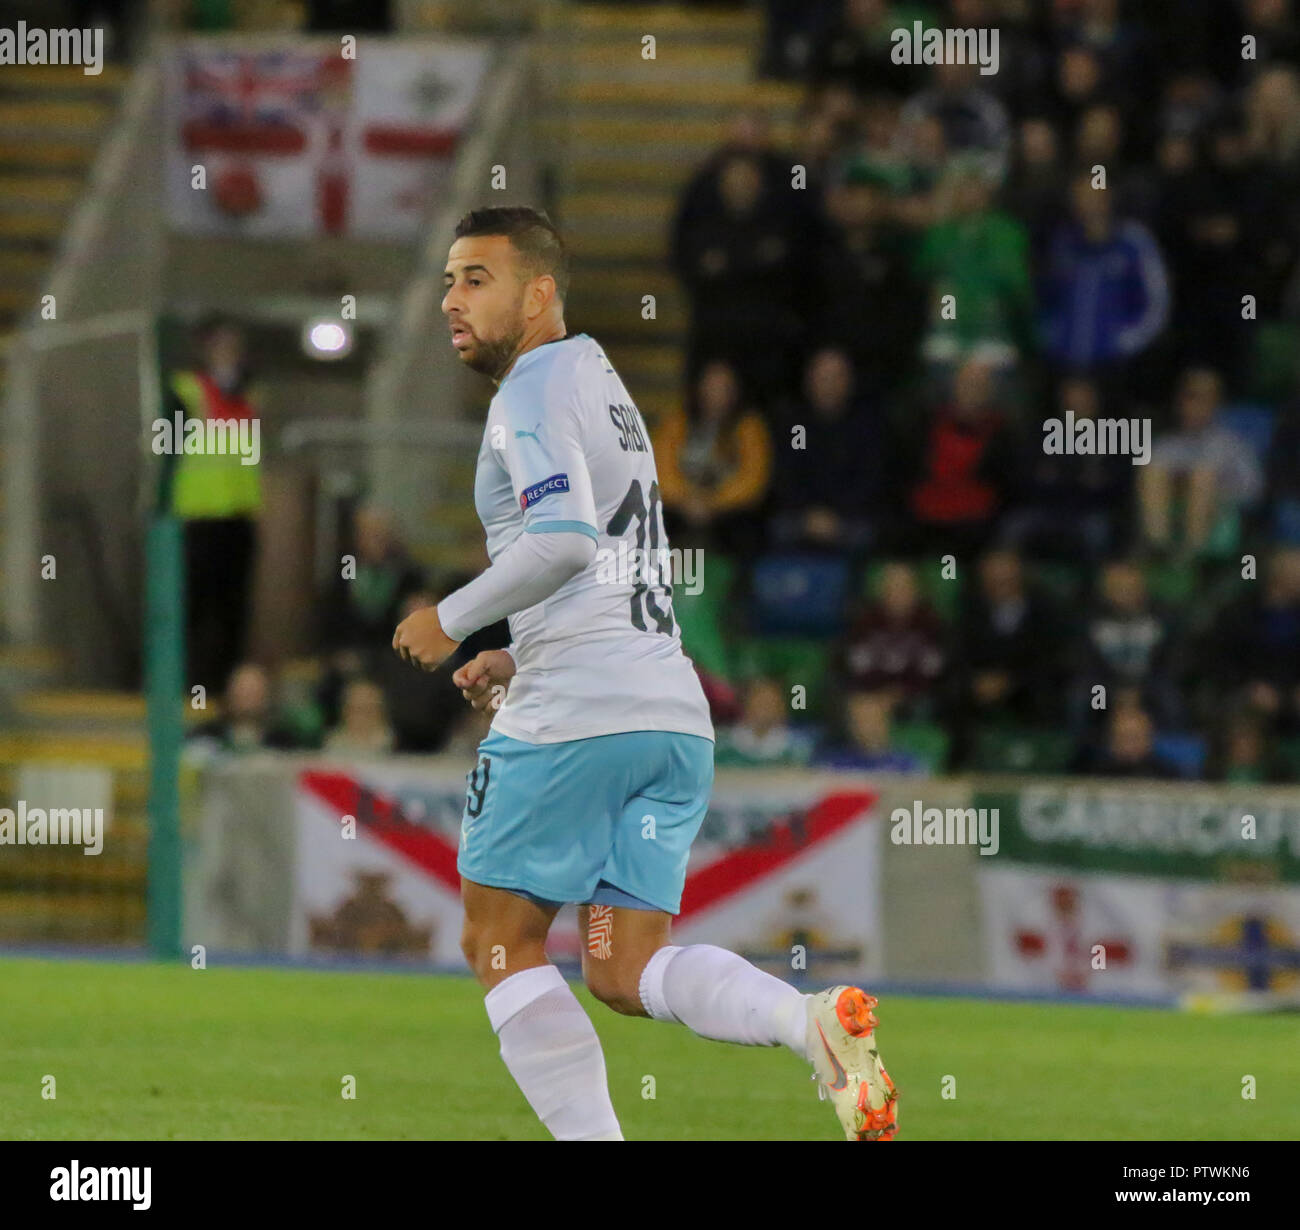 https://c8.alamy.com/comp/PTWKN6/national-football-stadium-at-windsor-park-belfast-11-september-2018-international-football-friendly-northern-ireland-3-israel-0-dia-seba-israel-19-PTWKN6.jpg